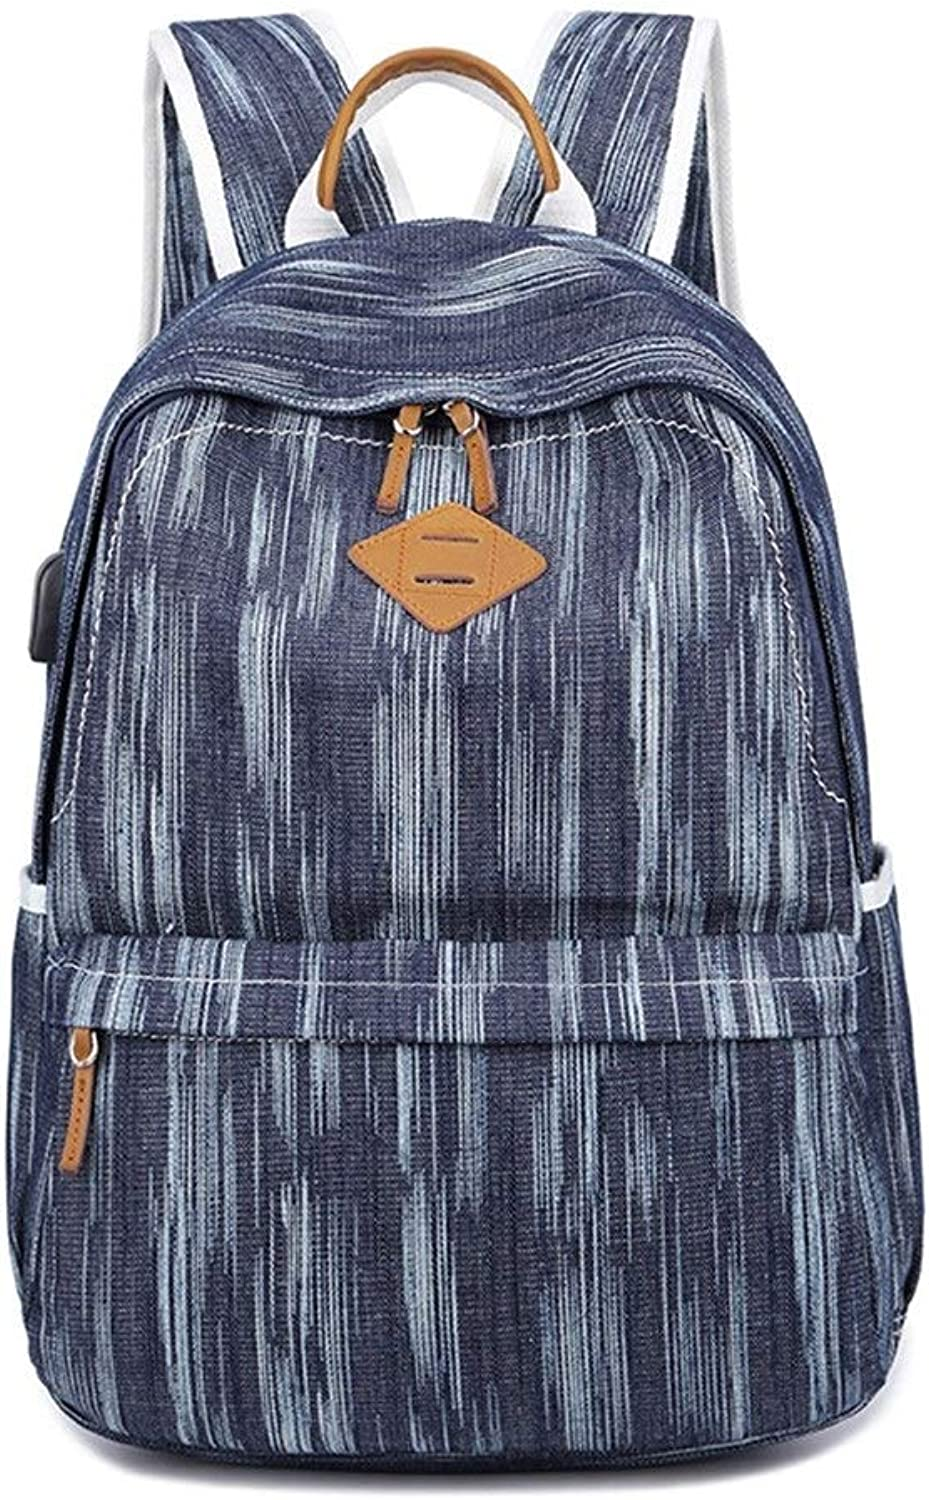 Backpack, USB Backpack Female Student Canvas Backpack Male Leisure Outdoor Travel Computer Bag (color   Dark blueee)